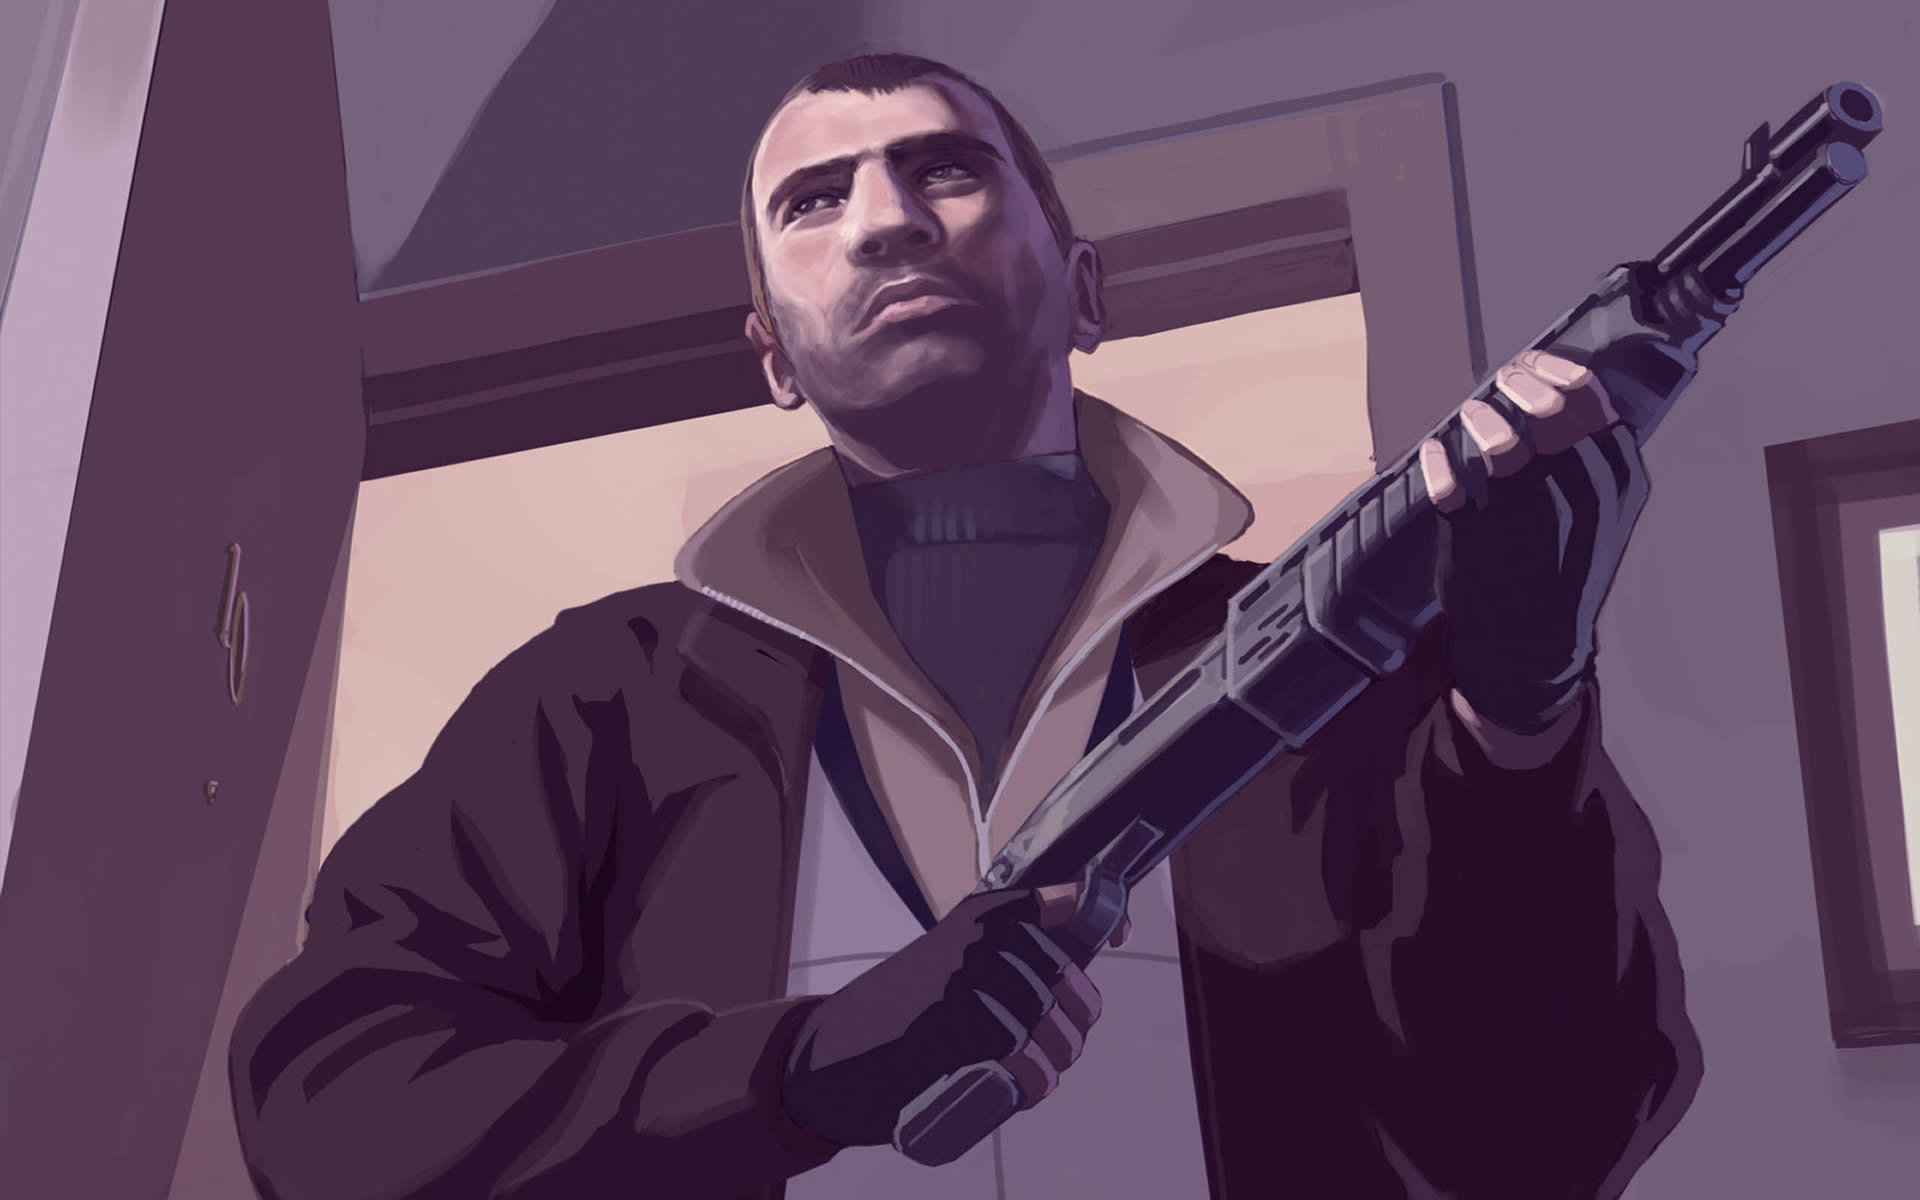 Niko Bellic With Shotgun